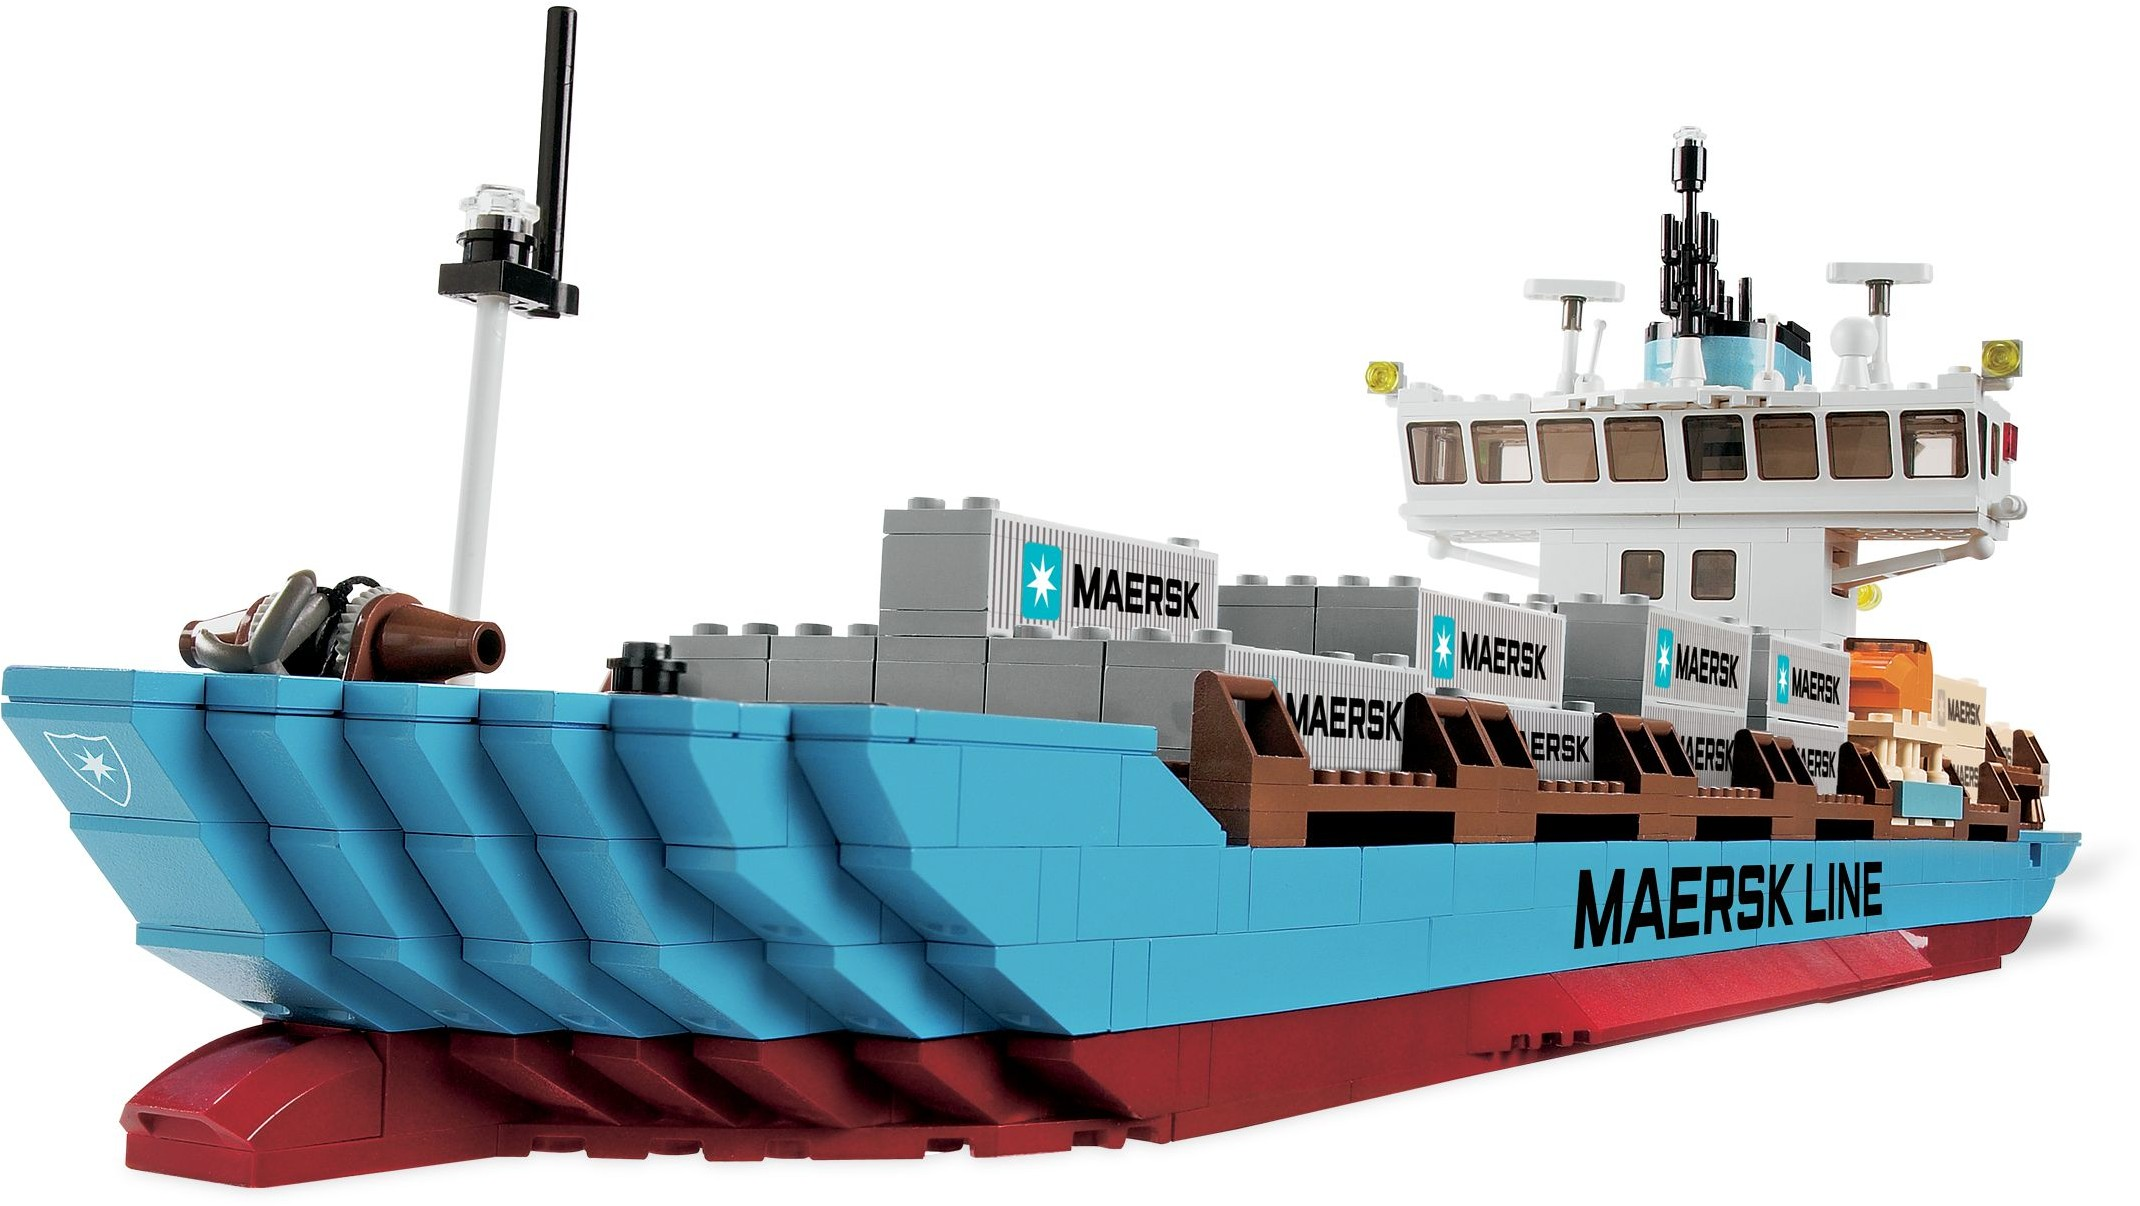 Maersk Line Container Ship - Shipping HD PNG